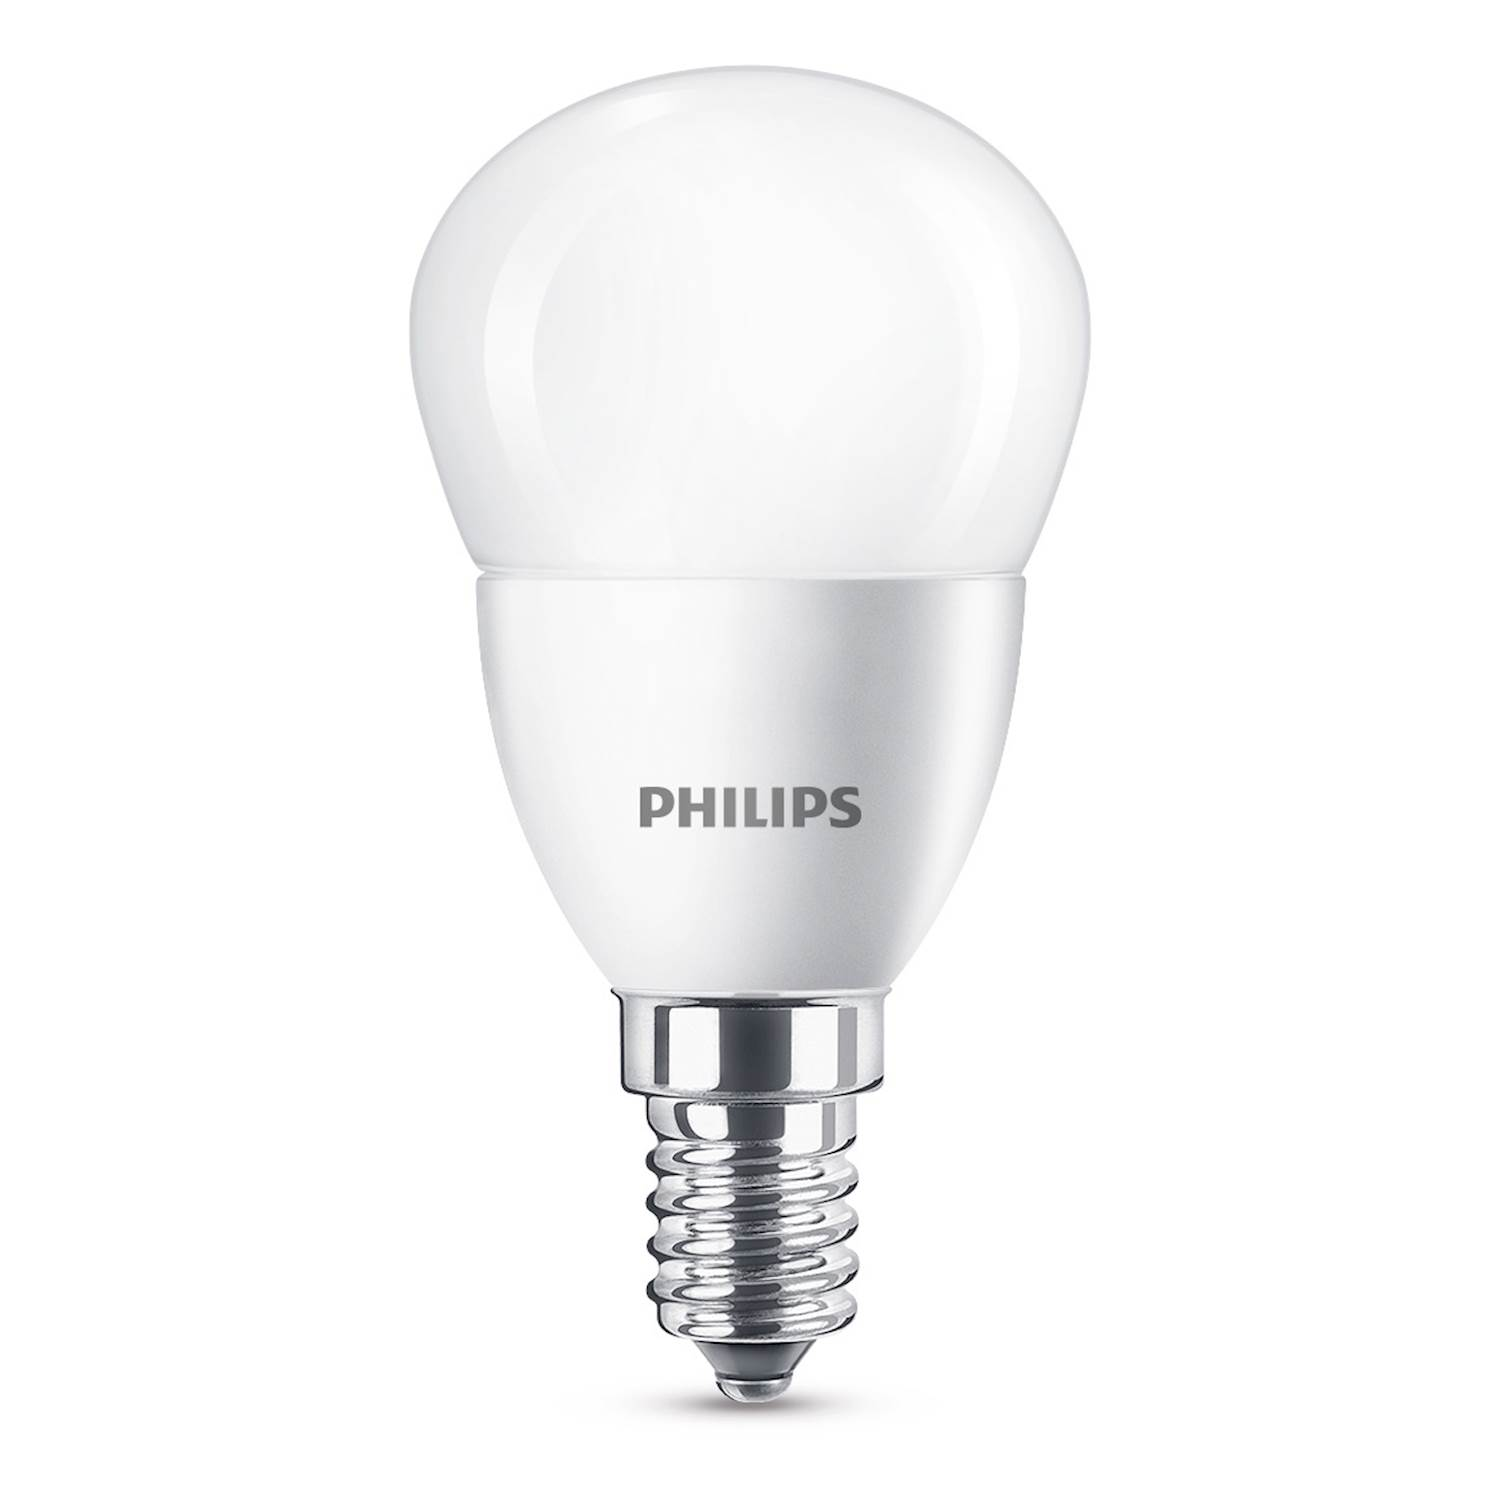 Philips LED KLOT 5,5W E14 VV FR ND